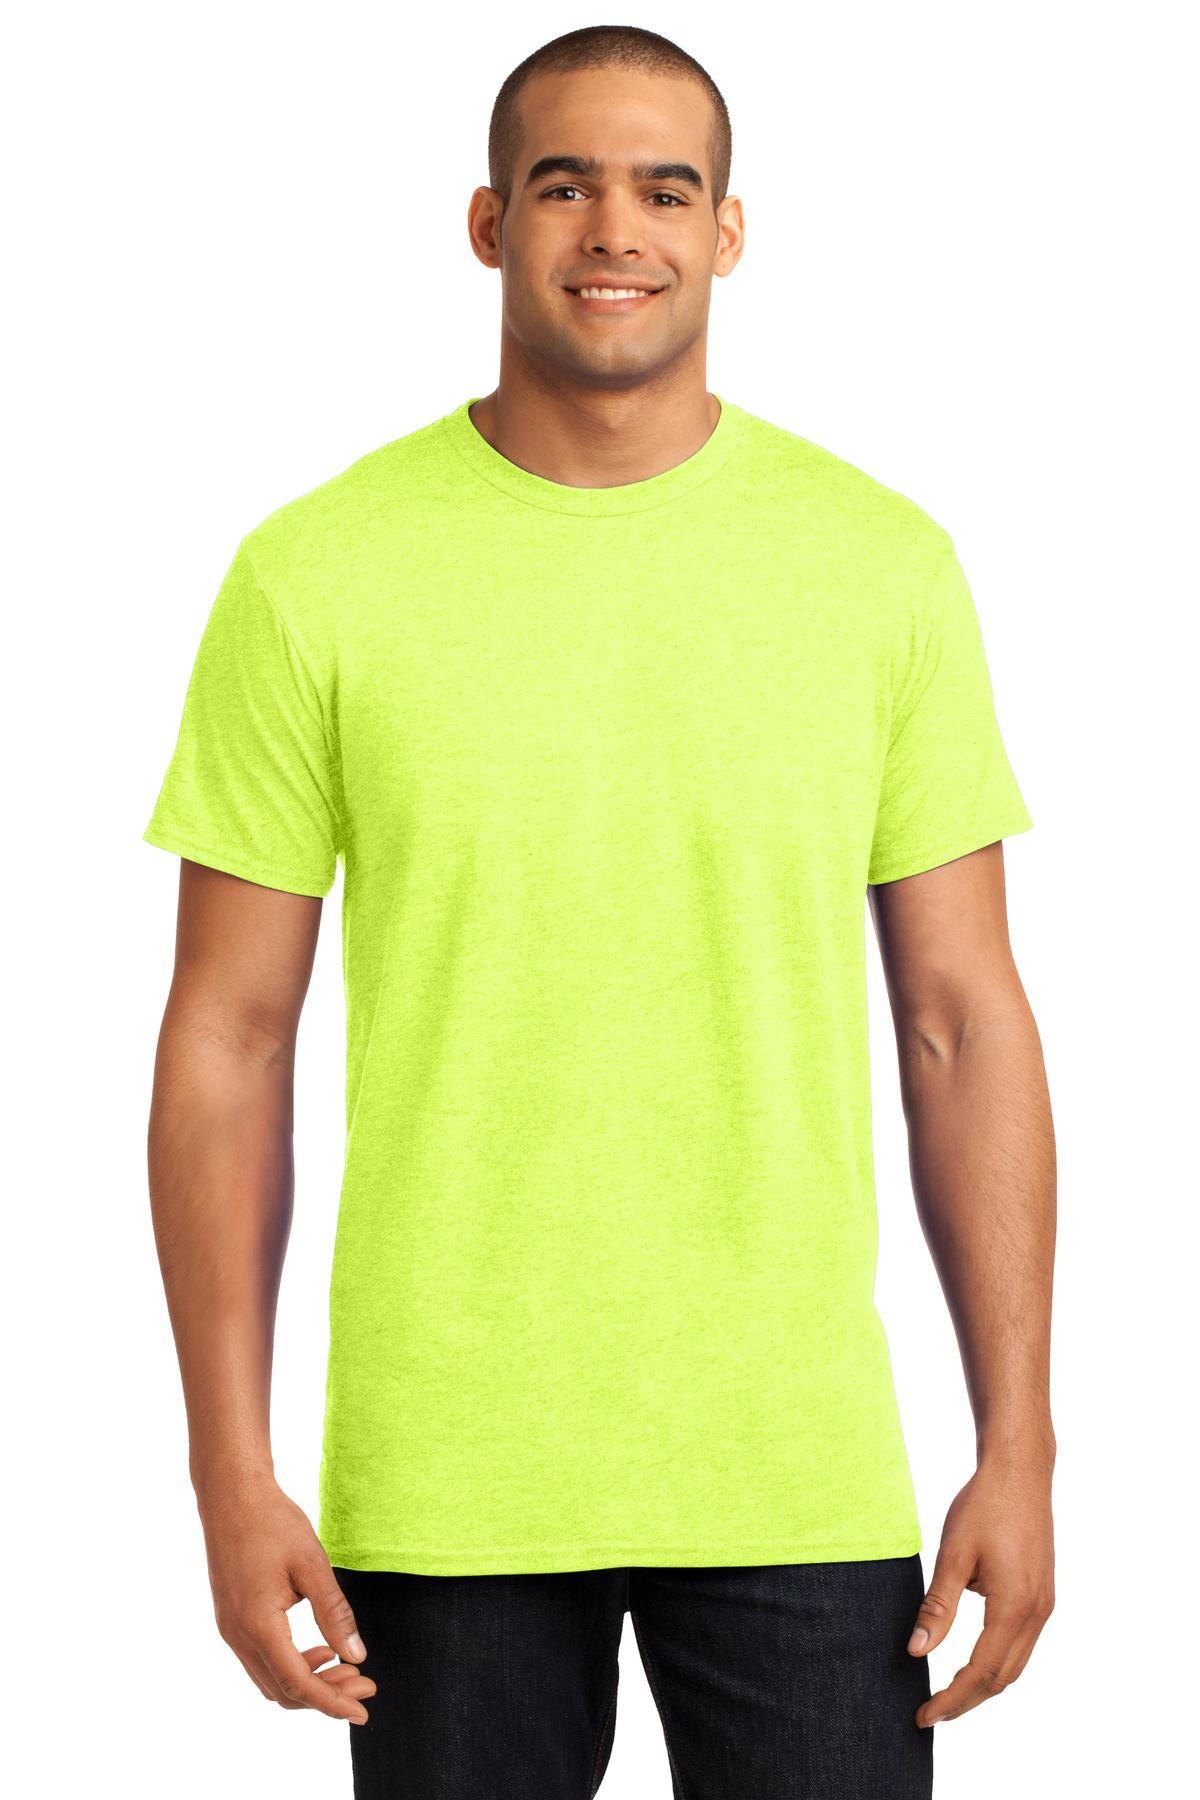 Neon Lemon Heather - Hanes 4200